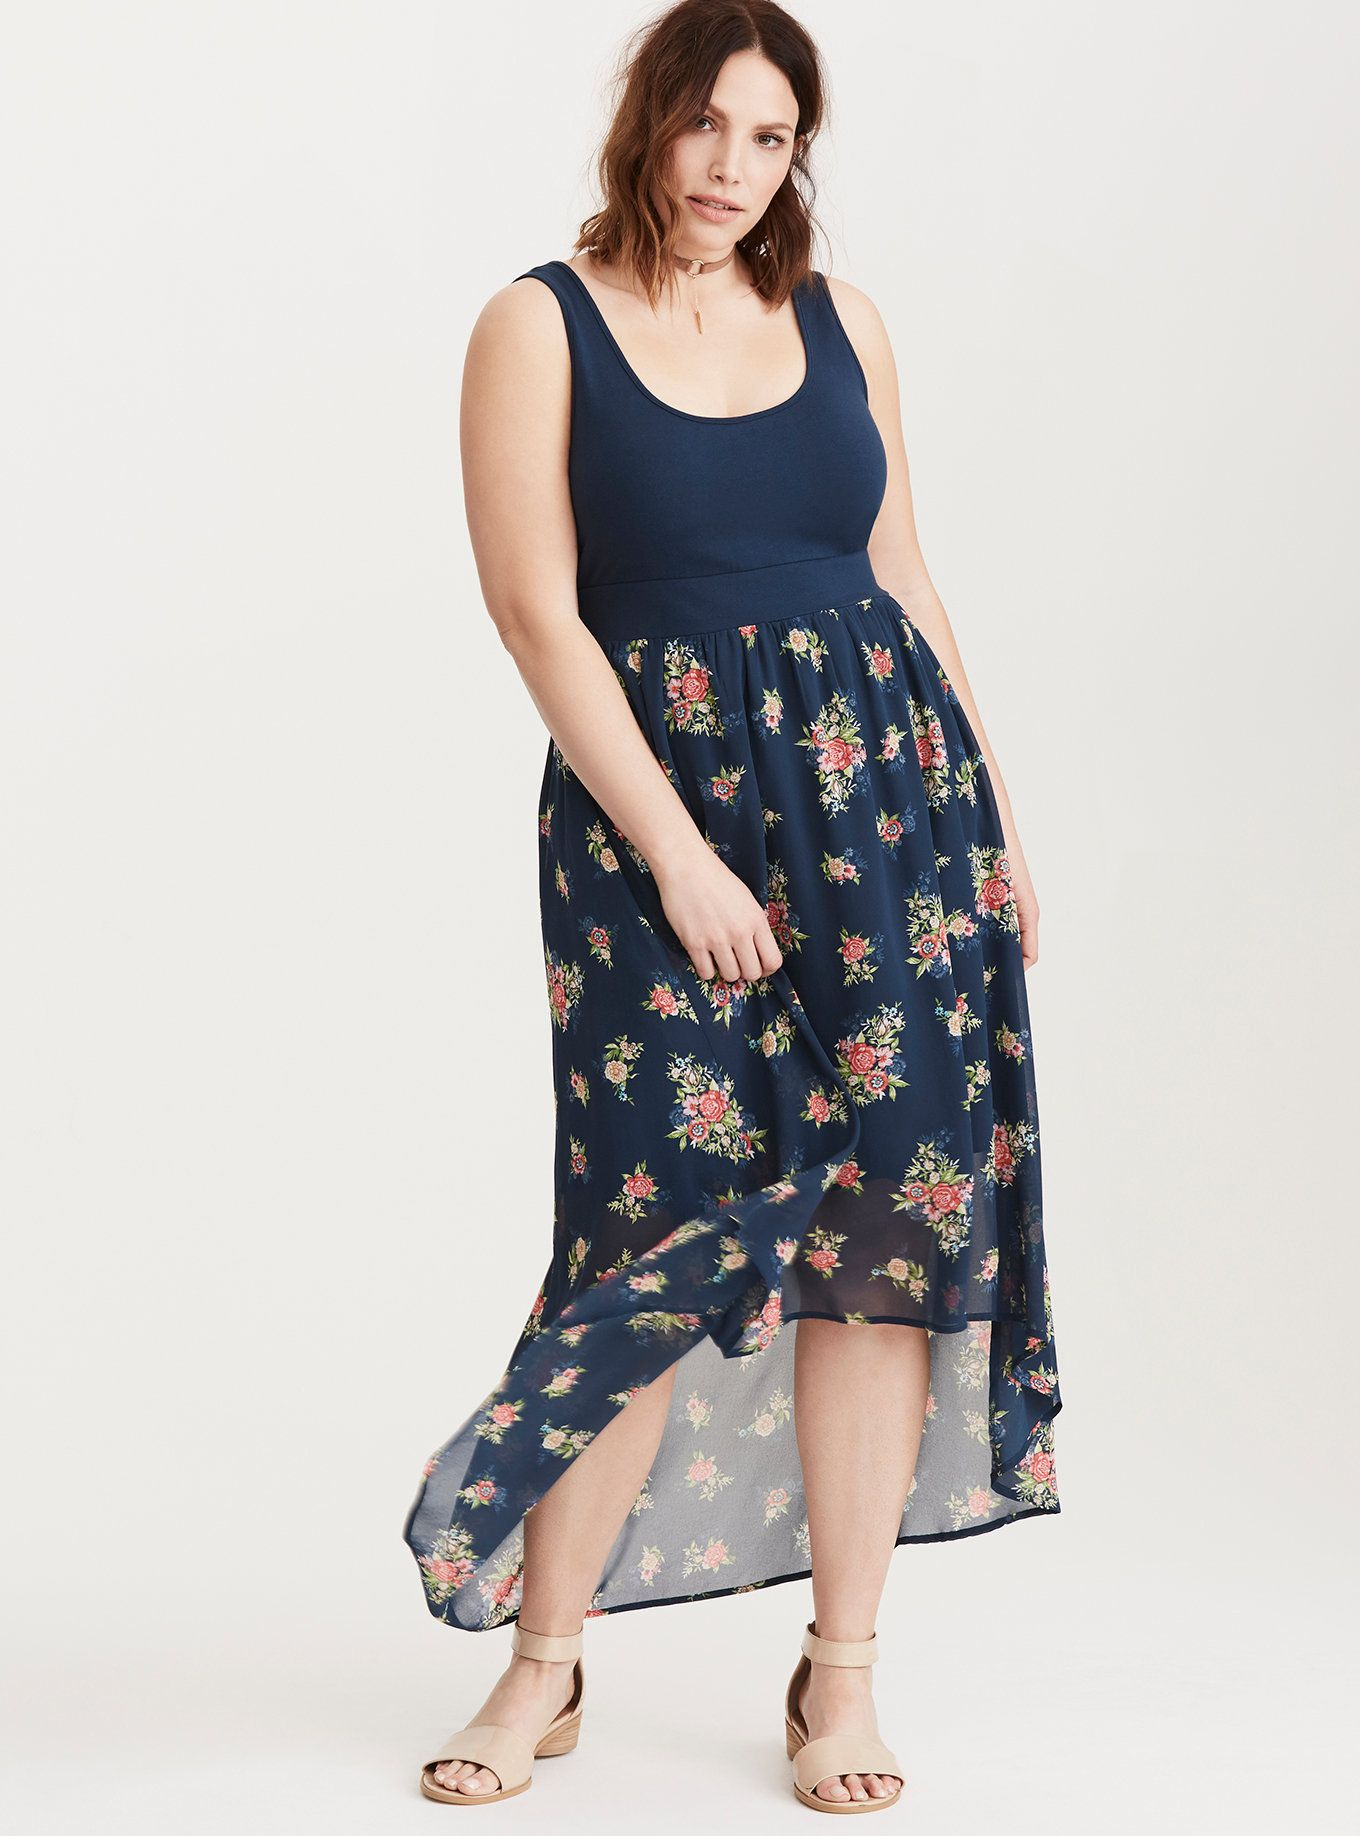 Lace dress torrid  Floral Print Knit to Woven HiLo Maxi Dress  Torrid Maxi dresses